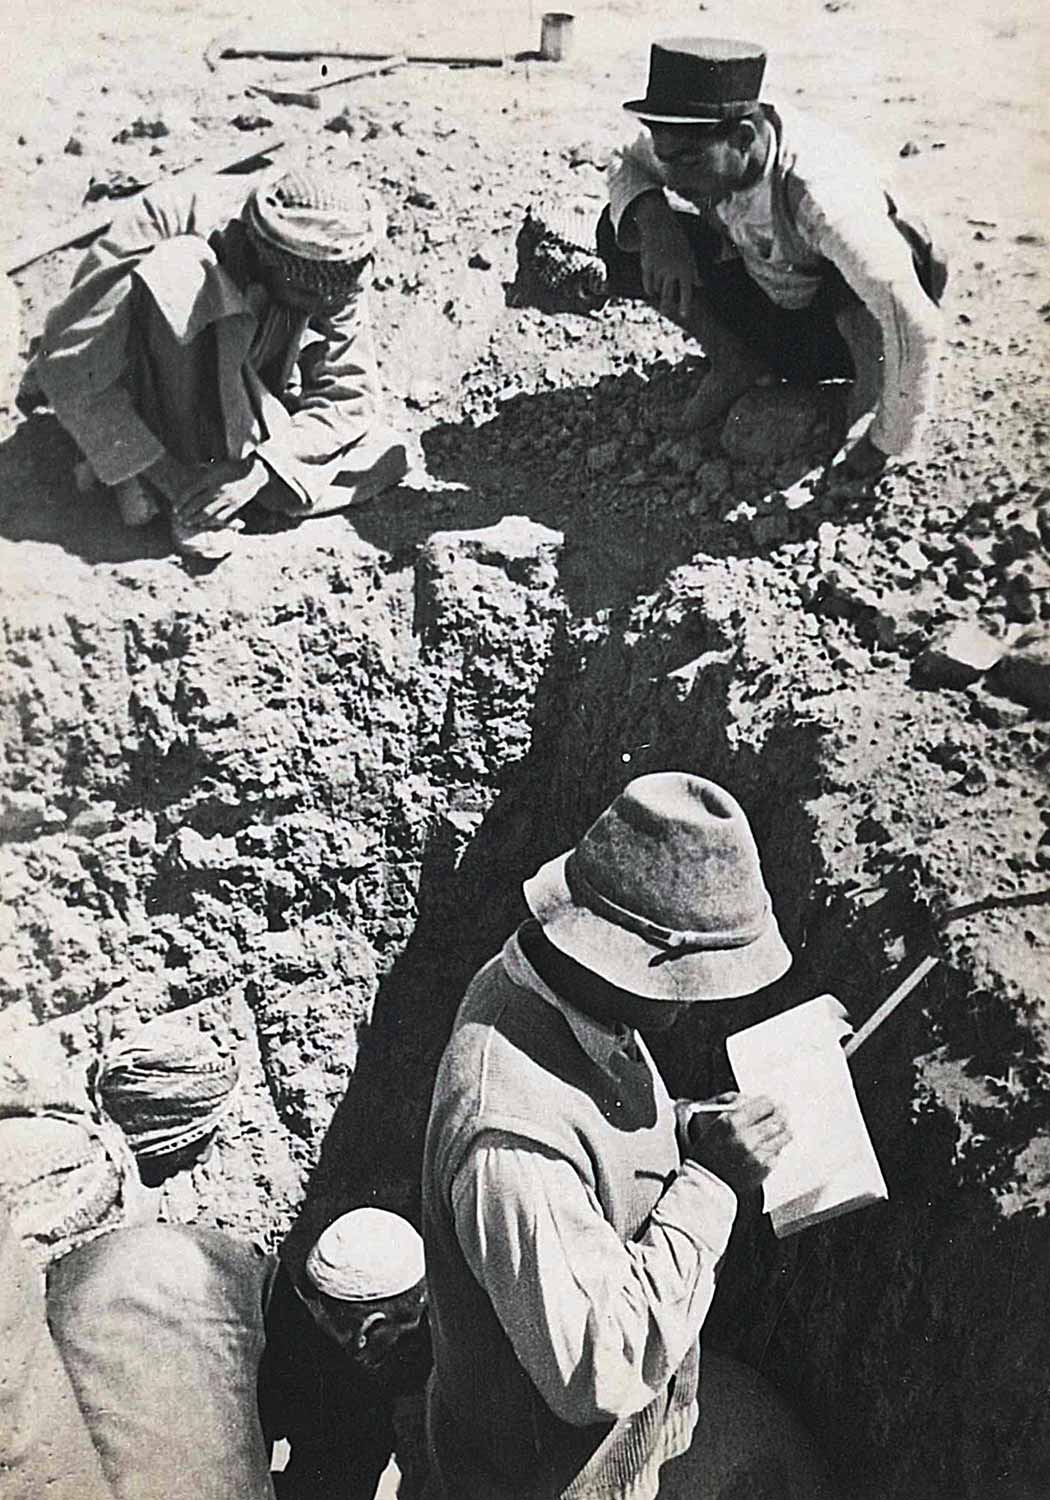 """One of several snapshots captures the moment when the two tablets were excavated. Hans-Wichart von Busse, """"Snapshot of excavation of tablets."""" Gelatin silver print. Collection of Azita Bina and Elmar W. Seibel, TL41708.31."""